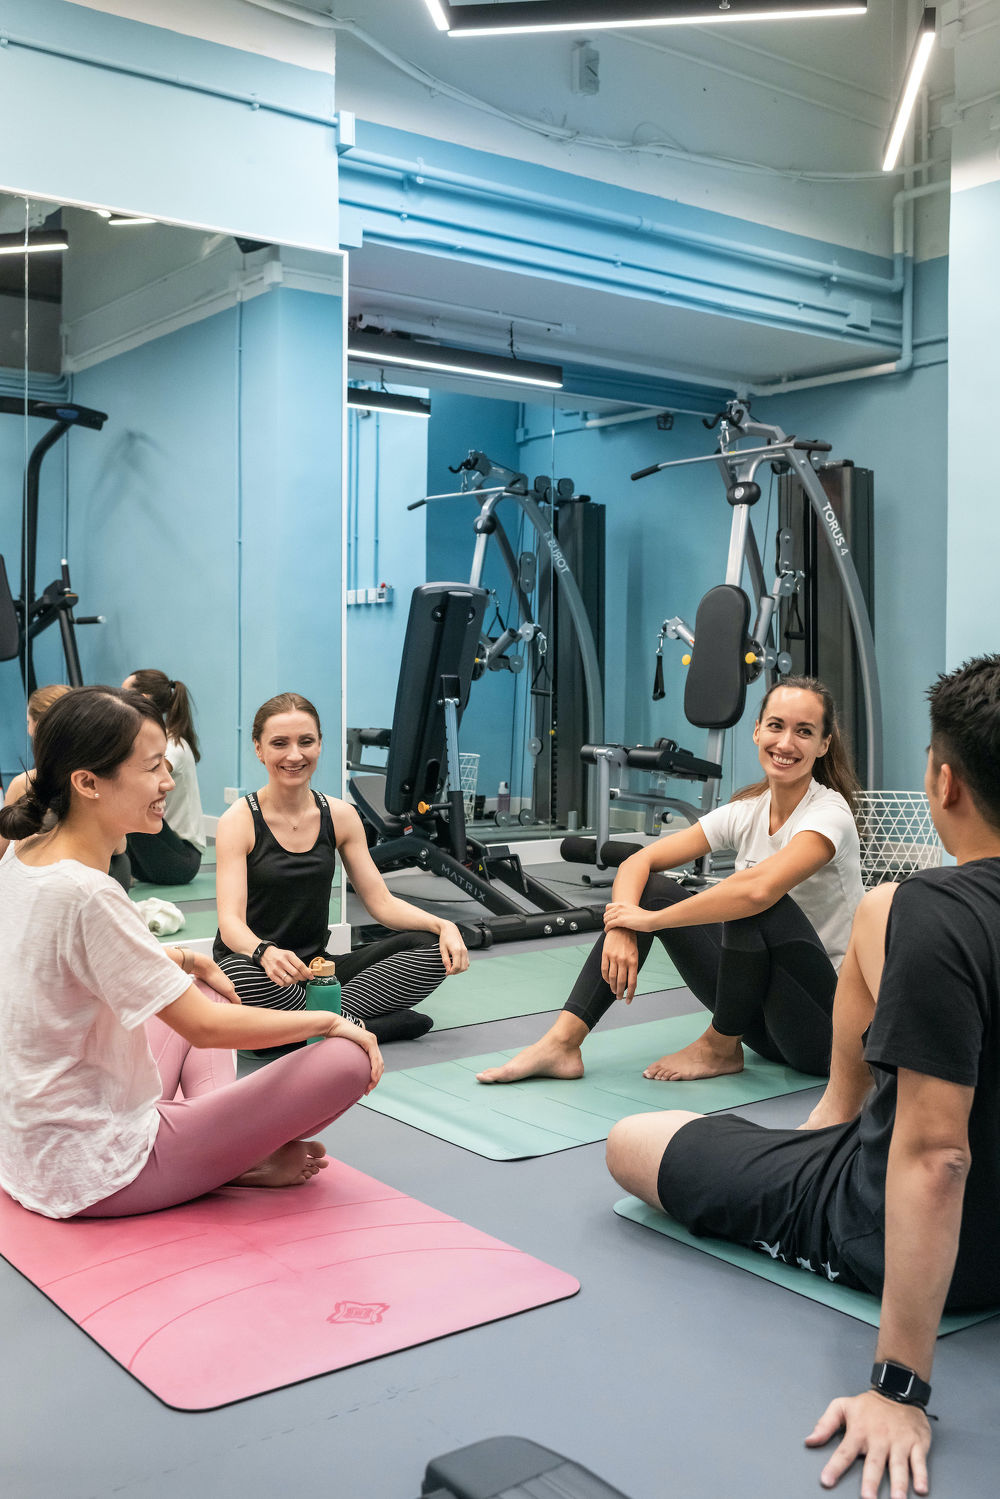 EDGEPROP SINGAPORE - The gym at Weave on Baker is one of the shared recreational amenities featured at the 95-unit co-living property in Hung Hom, Kowloon (Photo: Weave Co-Living - EDGEPROP SINGAPORE